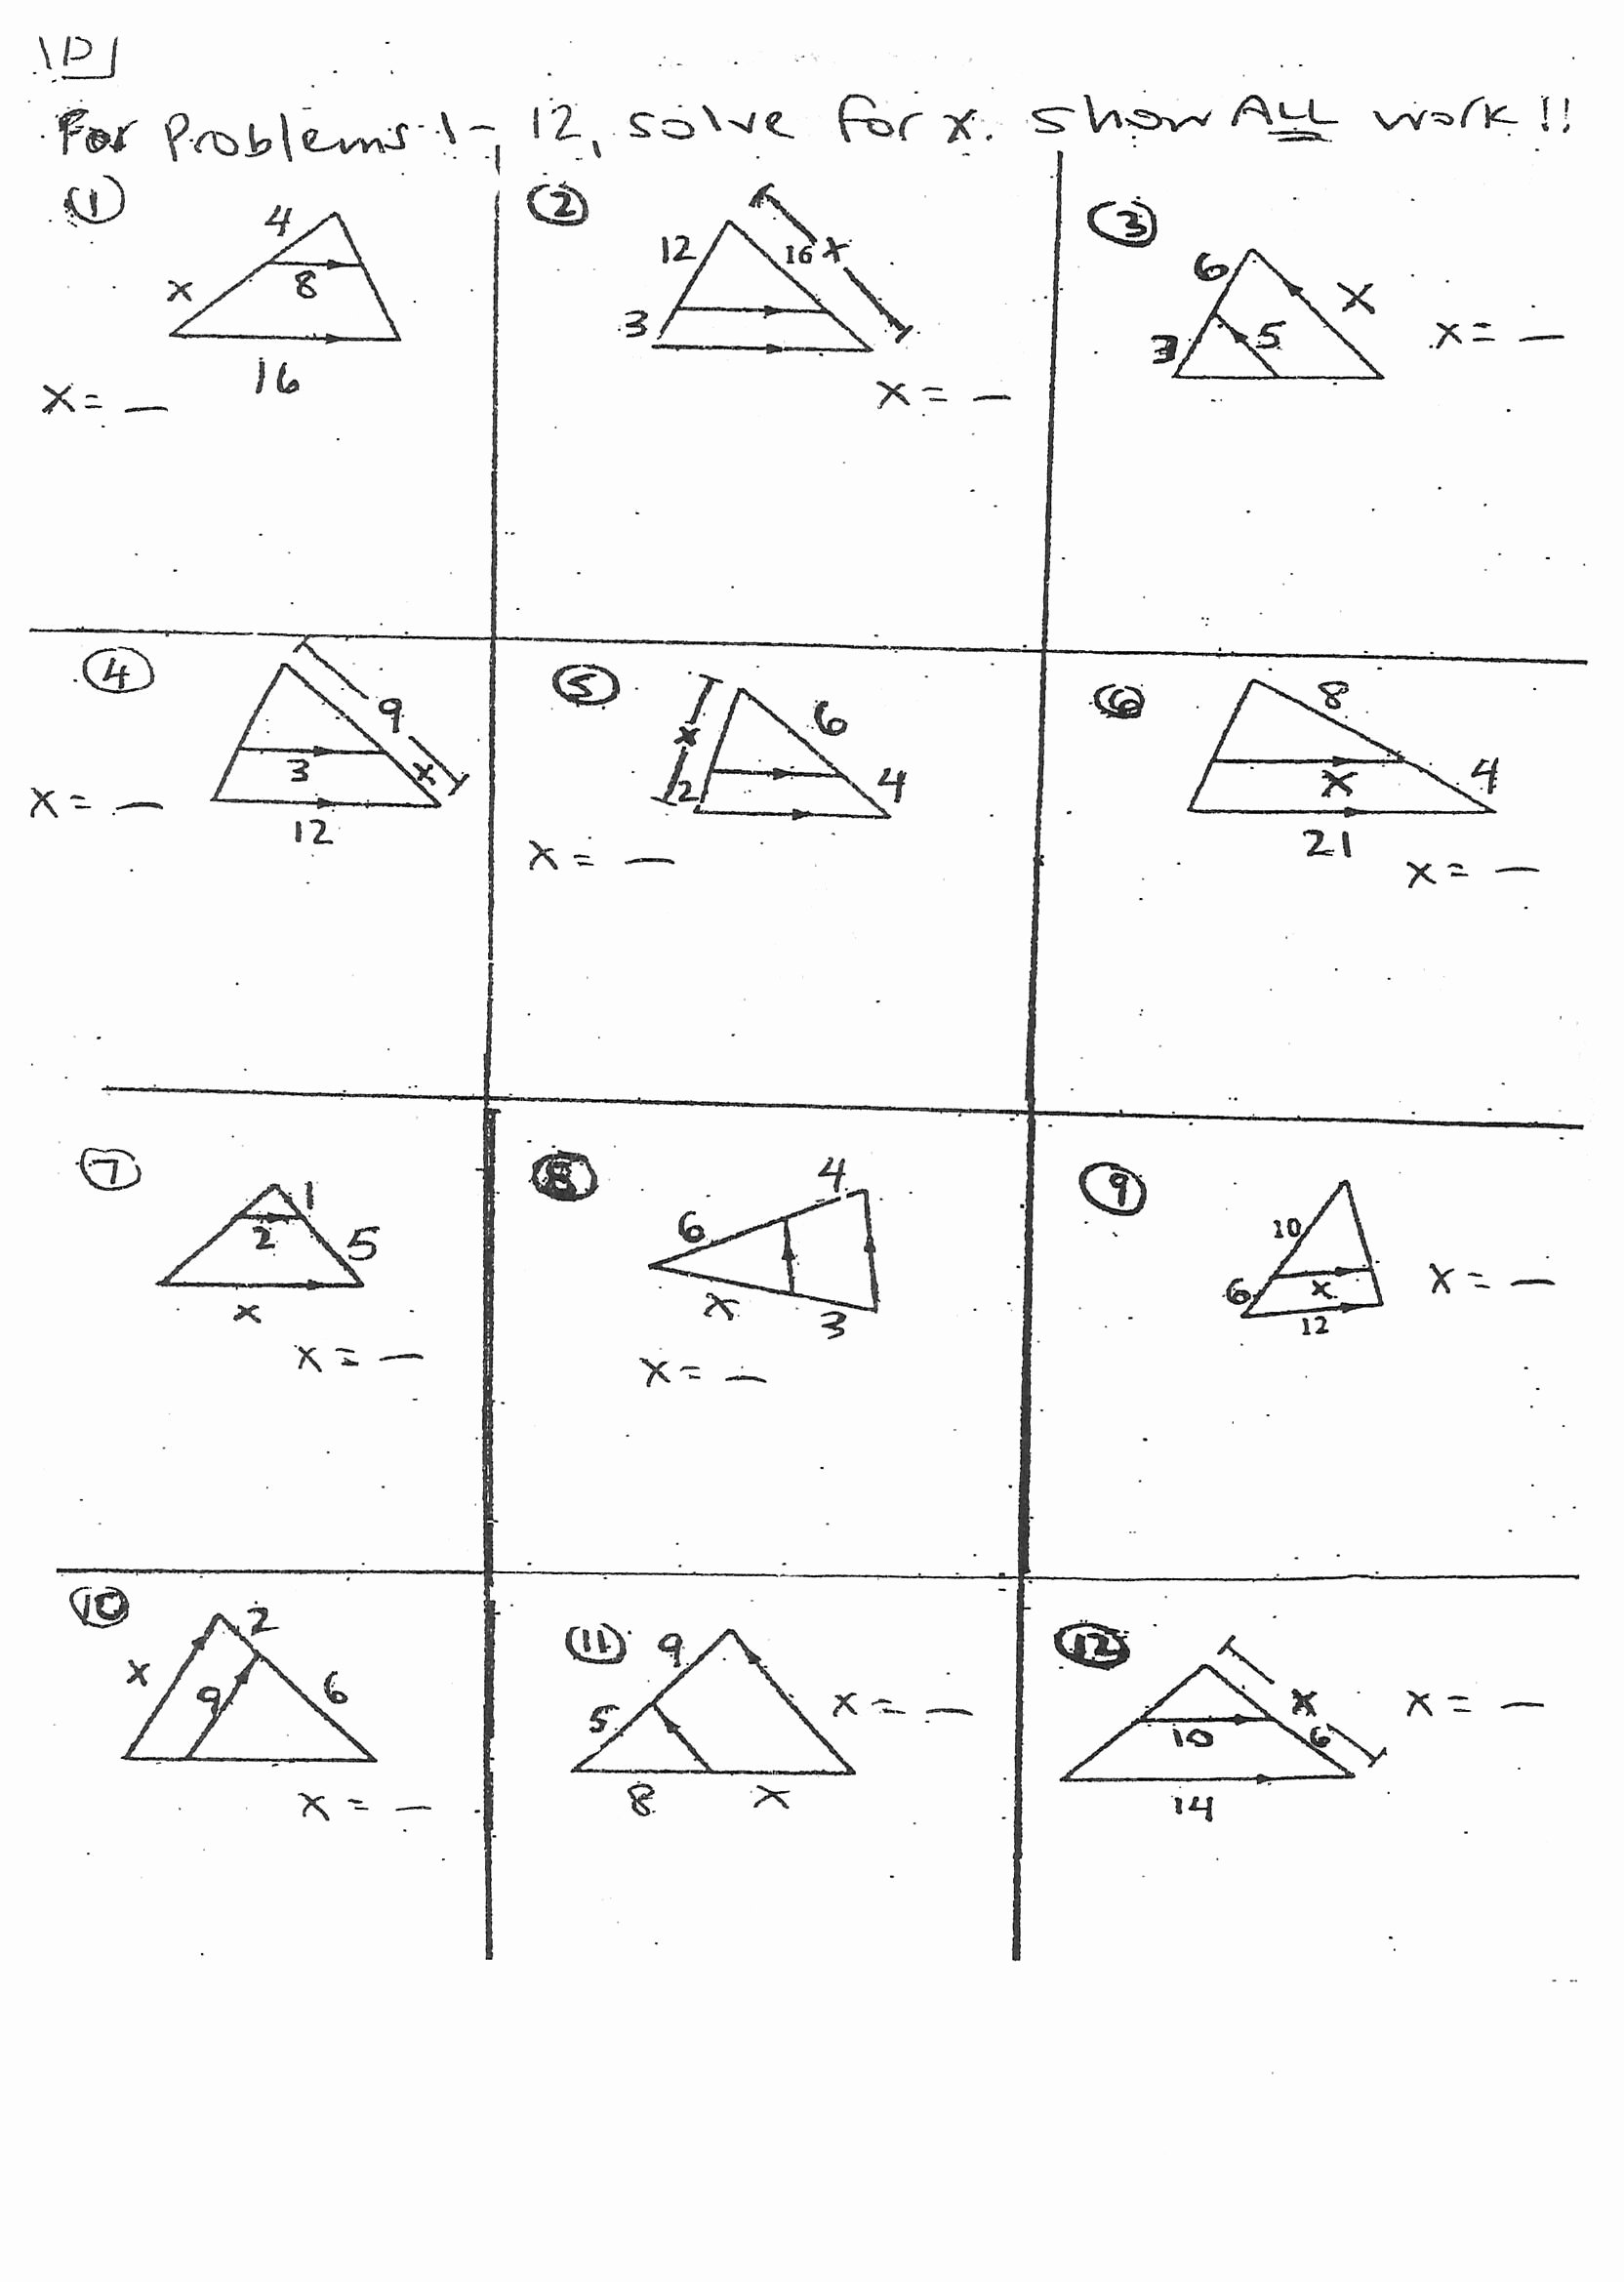 Midsegment Of A Triangle Worksheet Inspirational Image Result for Triangle Midsegments Worksheet